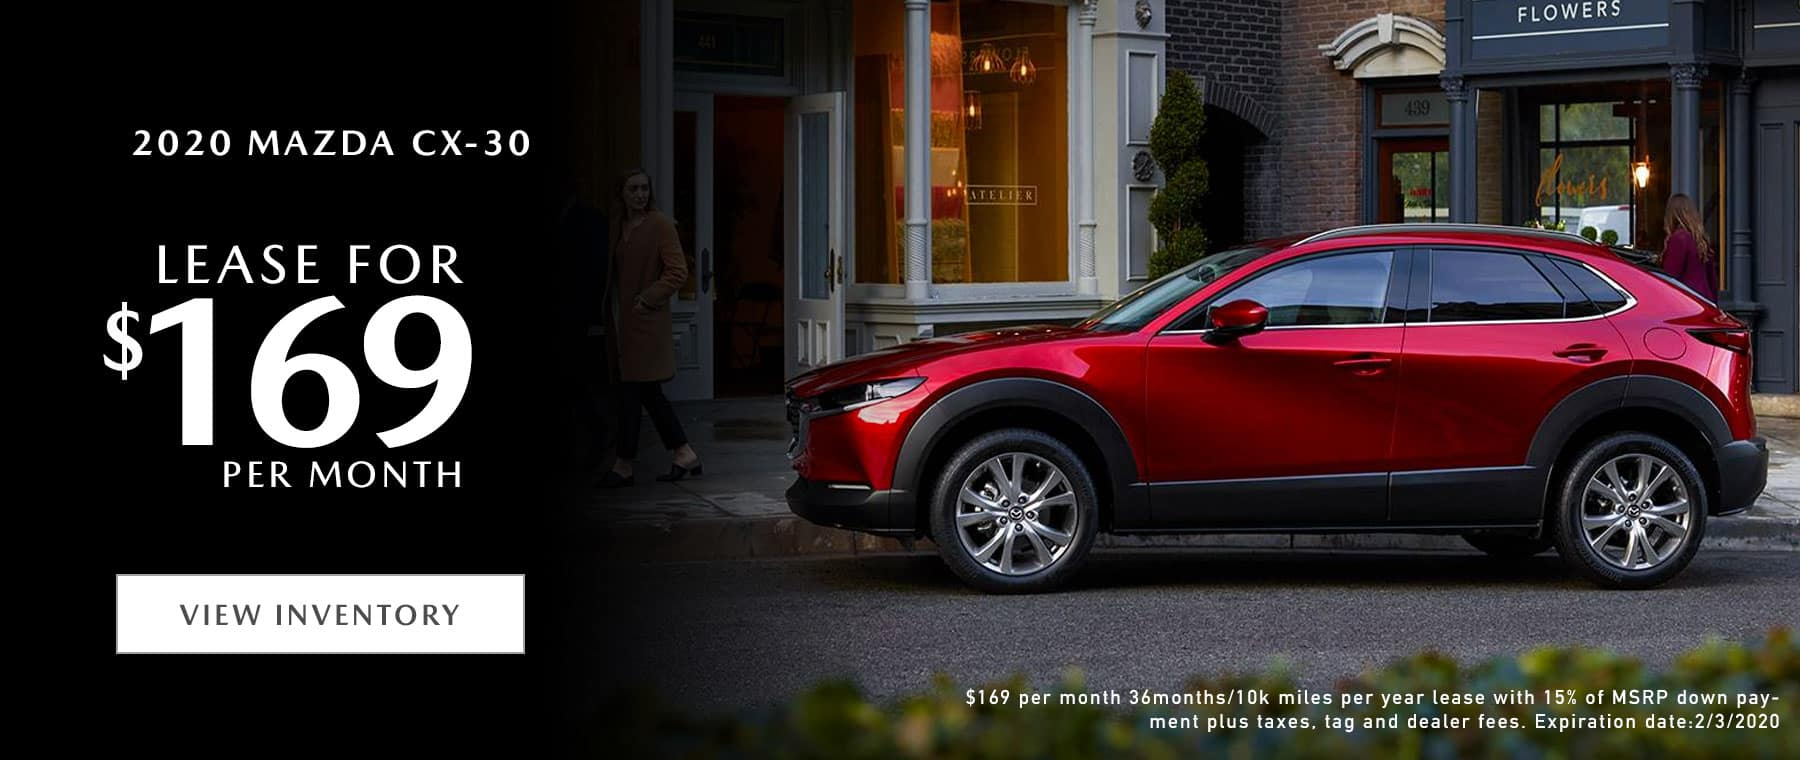 2020 Mazda CX-30 Lease Offer | Mazda of Fort Walton Beach